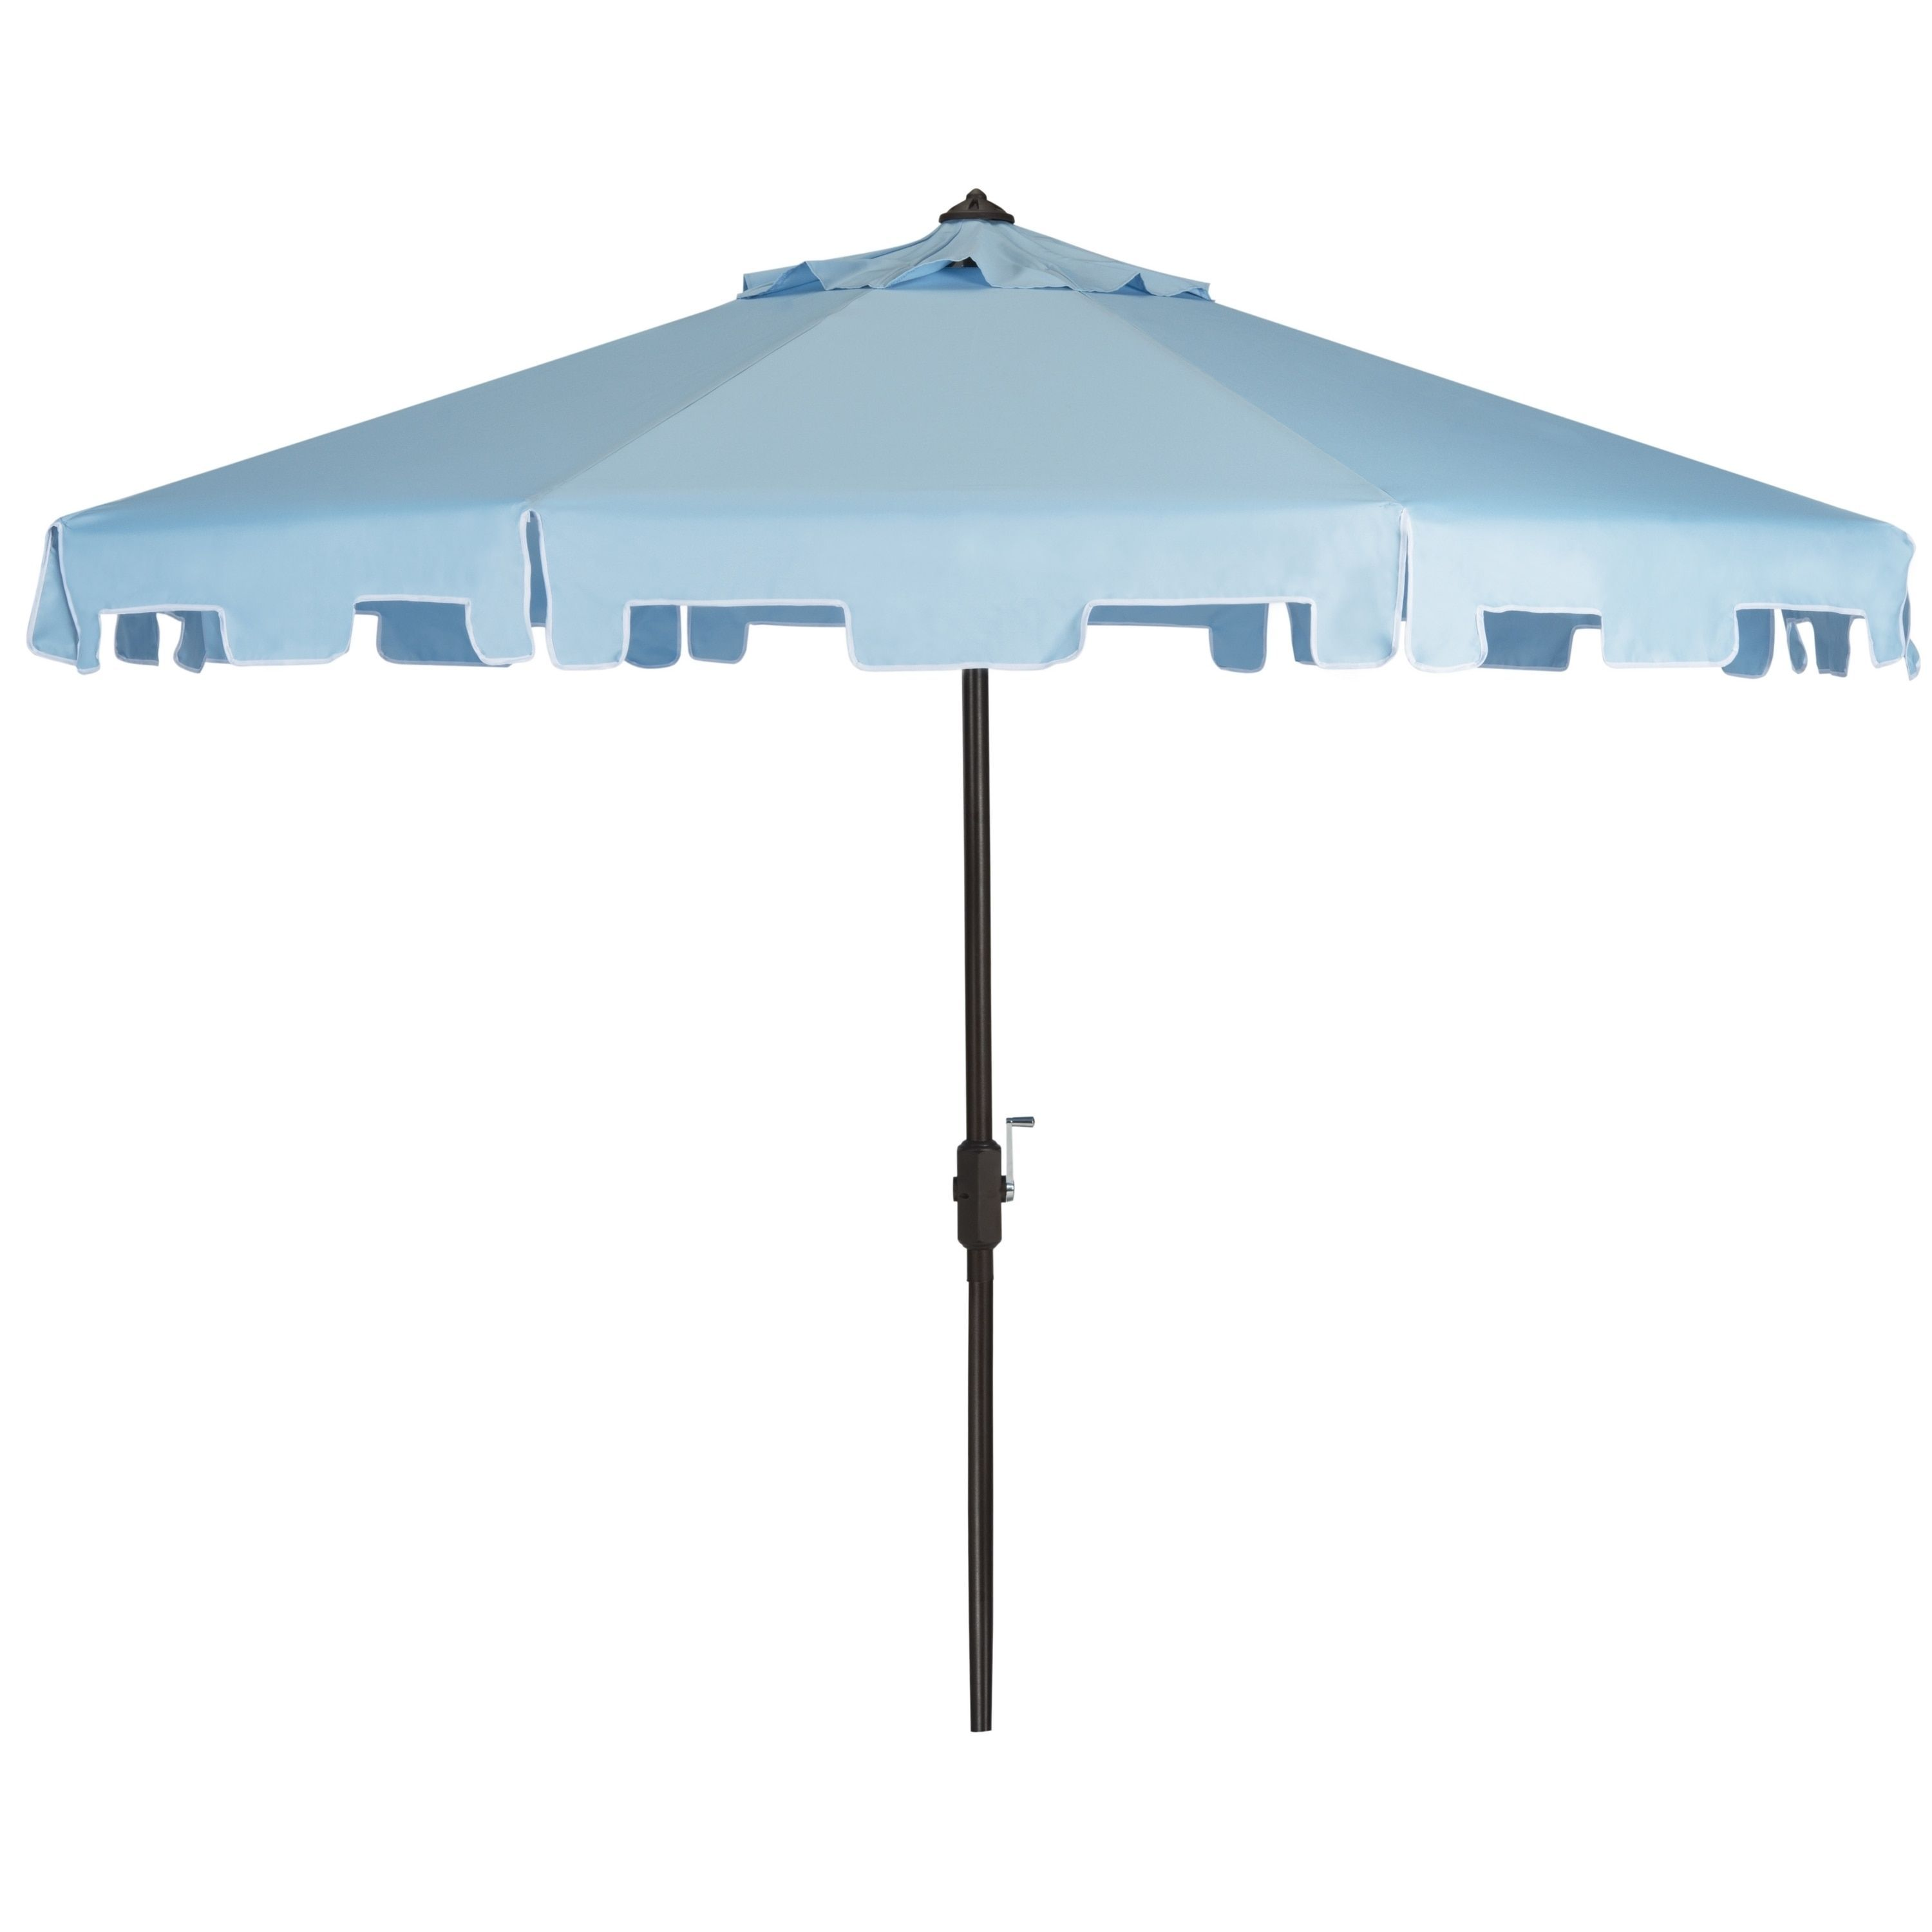 Safavieh Zimmerman Blue Aluminum Tilt and Crank 9-foot Crank Market Patio Umbrella With Flap (PAT8000D)  sc 1 st  Pinterest : crank patio umbrellas - thejasonspencertrust.org